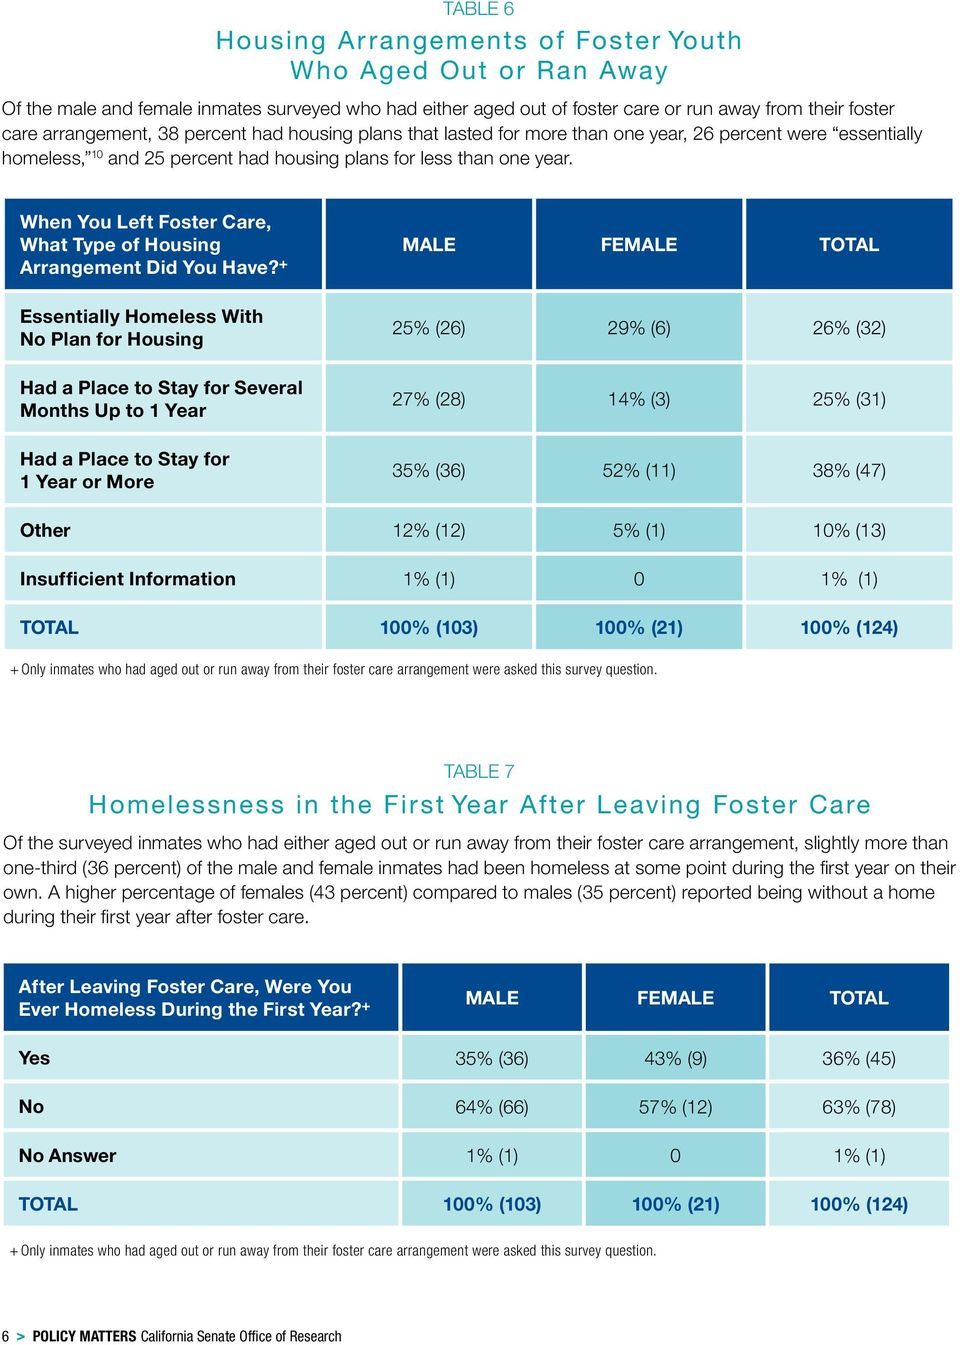 When You Left Foster Care, What Type of Housing Arrangement Did You Have?